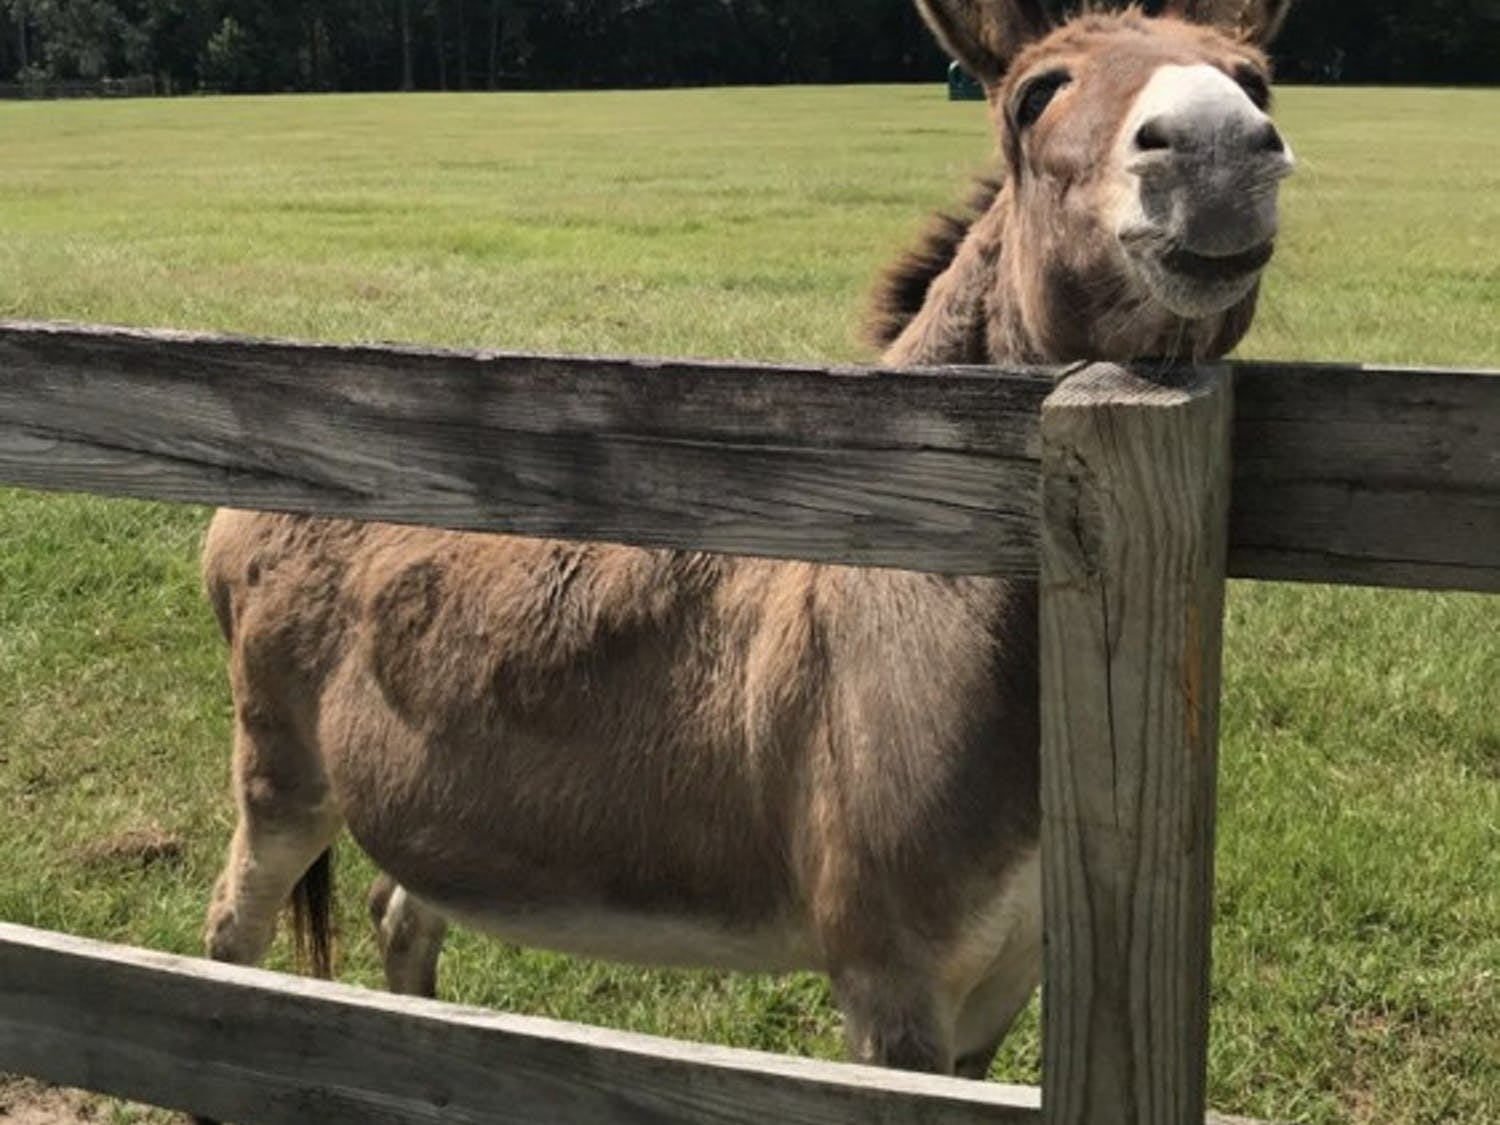 Moe is one of four donkeys on Mill Creek Farm. He enjoys attention and being hand-fed carrots.